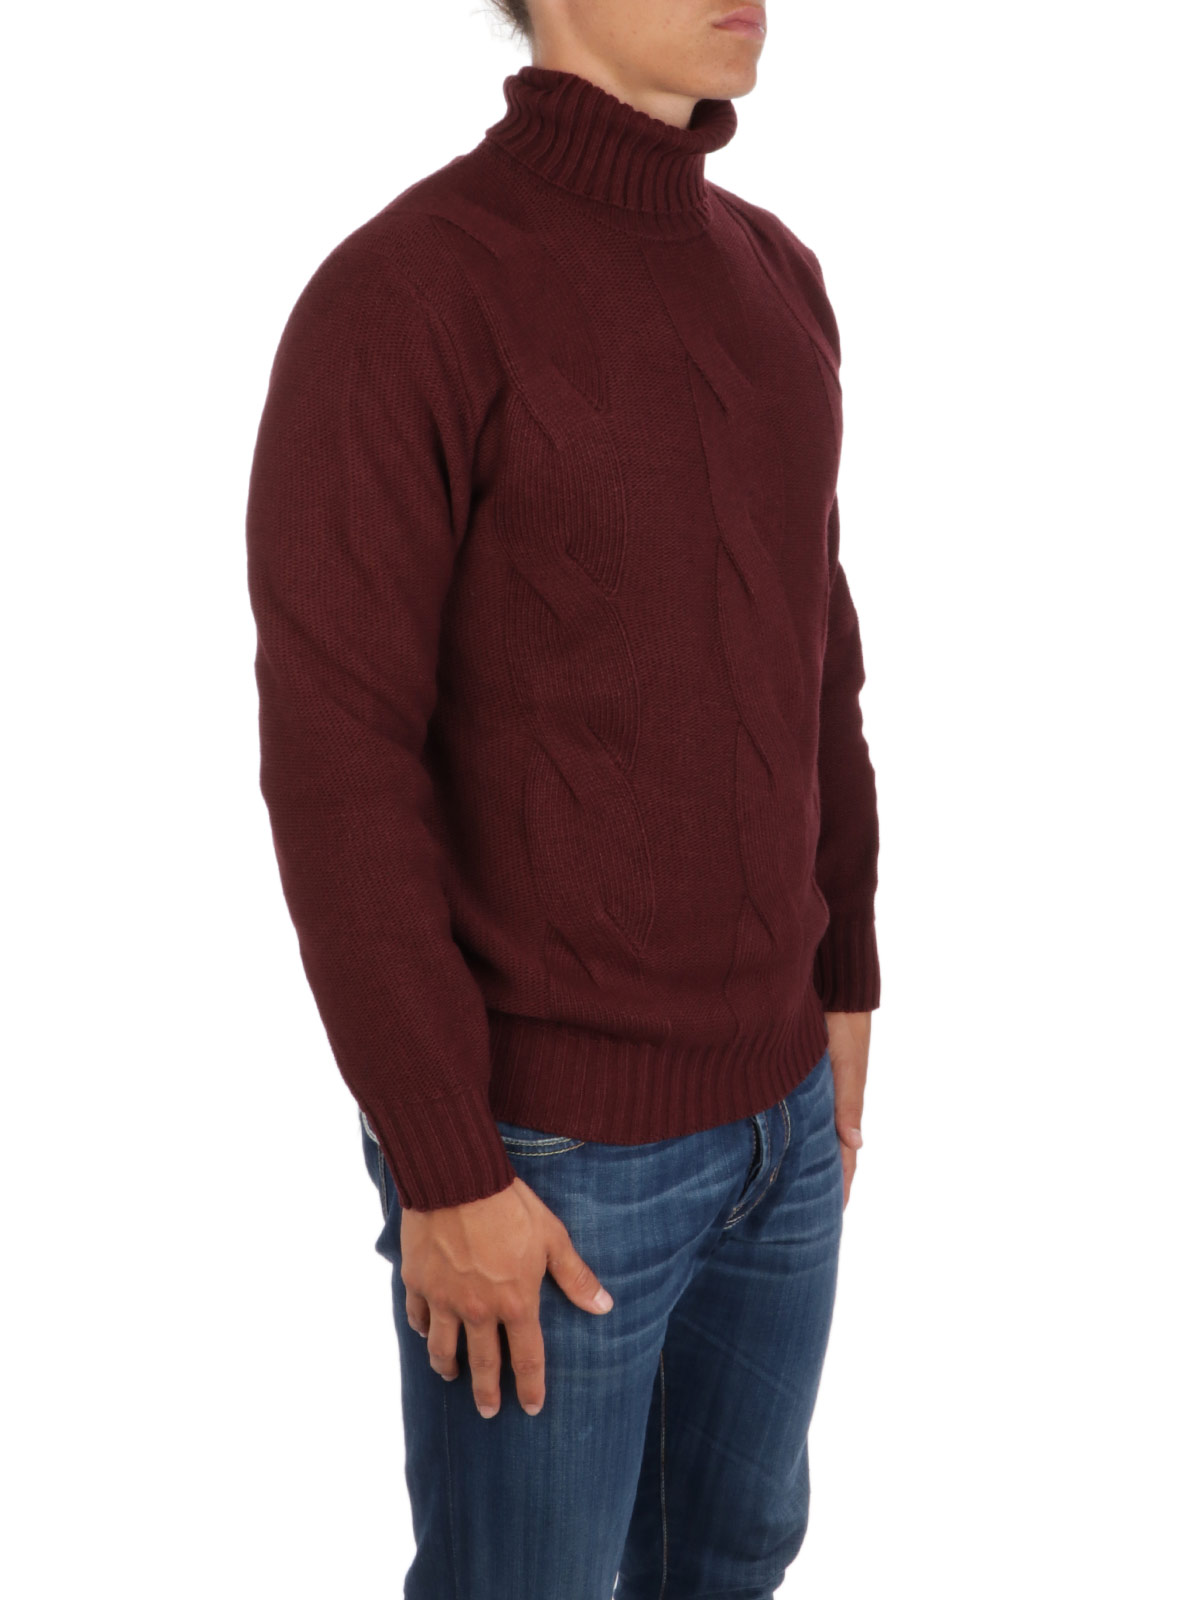 Picture of BROOKSFIELD | Men's Cable Turtleneck Sweater